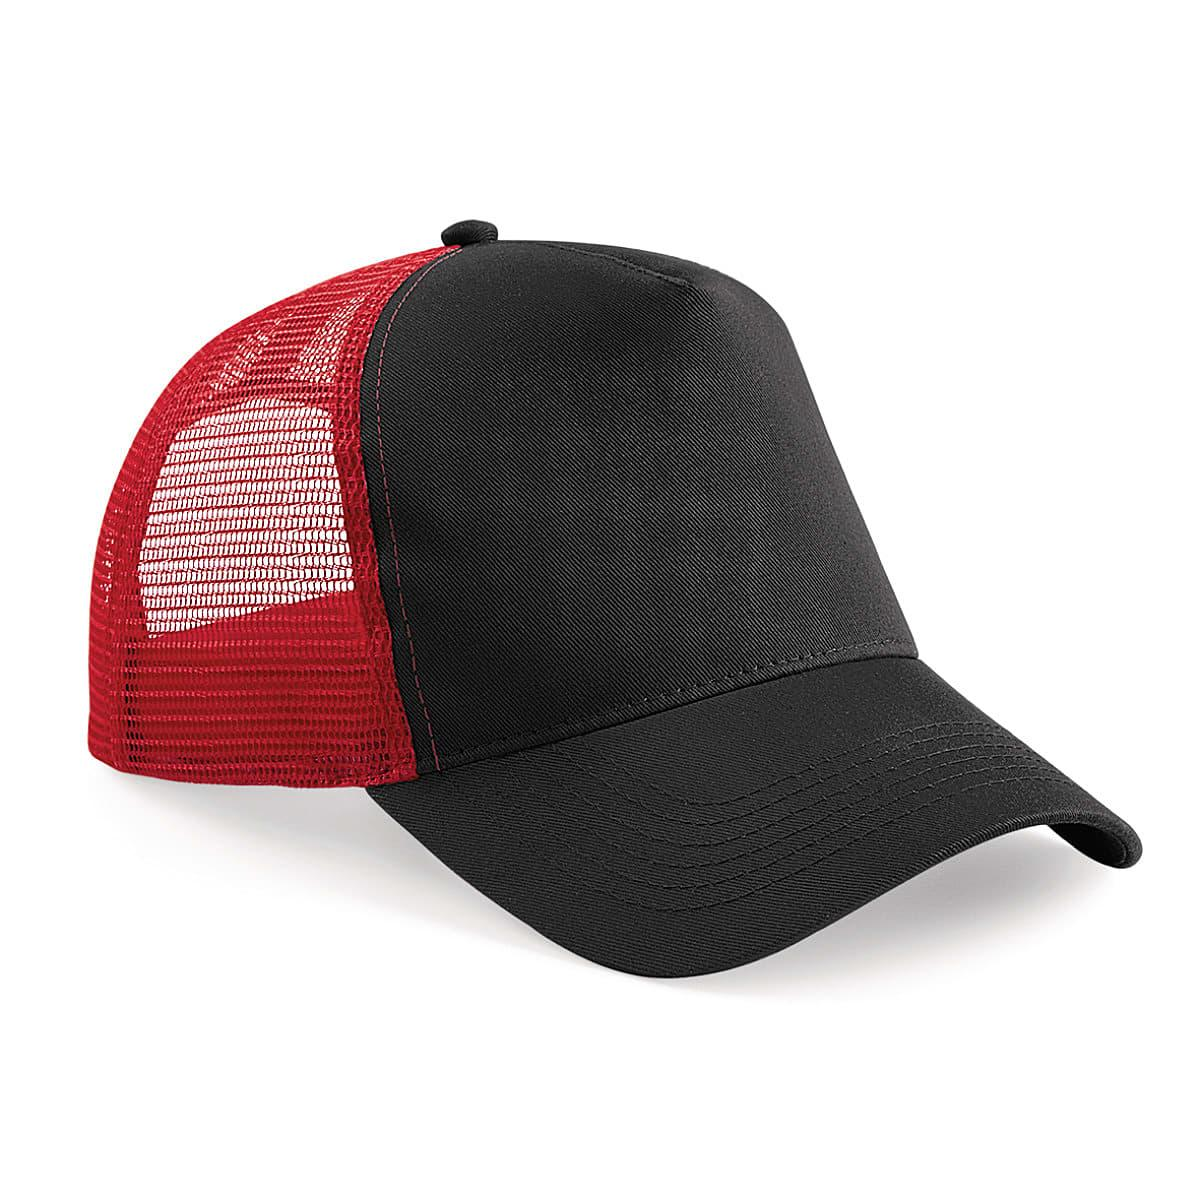 Beechfield Snapback Trucker Cap in Black / Classic Red (Product Code: B640)